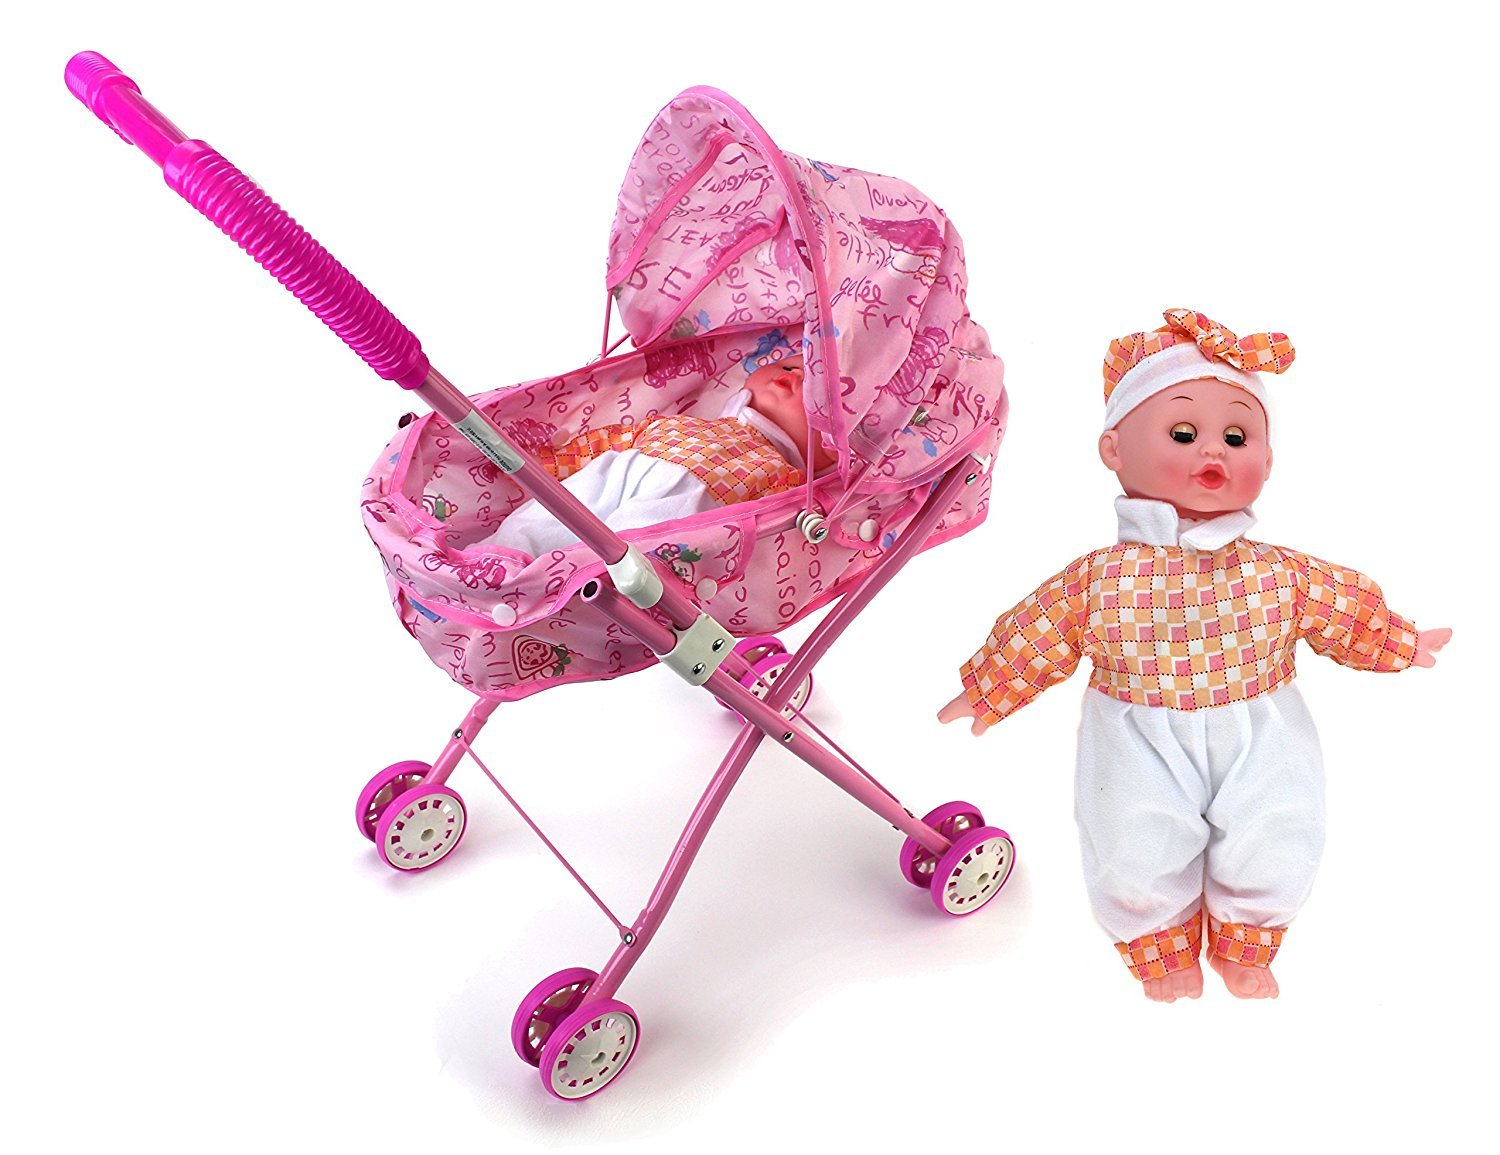 Super Cute Adorable Sleepy Newborn Baby Toy Doll w/ Folding Stroller, Stroller Baby Toy for Children, Kids. Toy Babies for Fun Pretend play